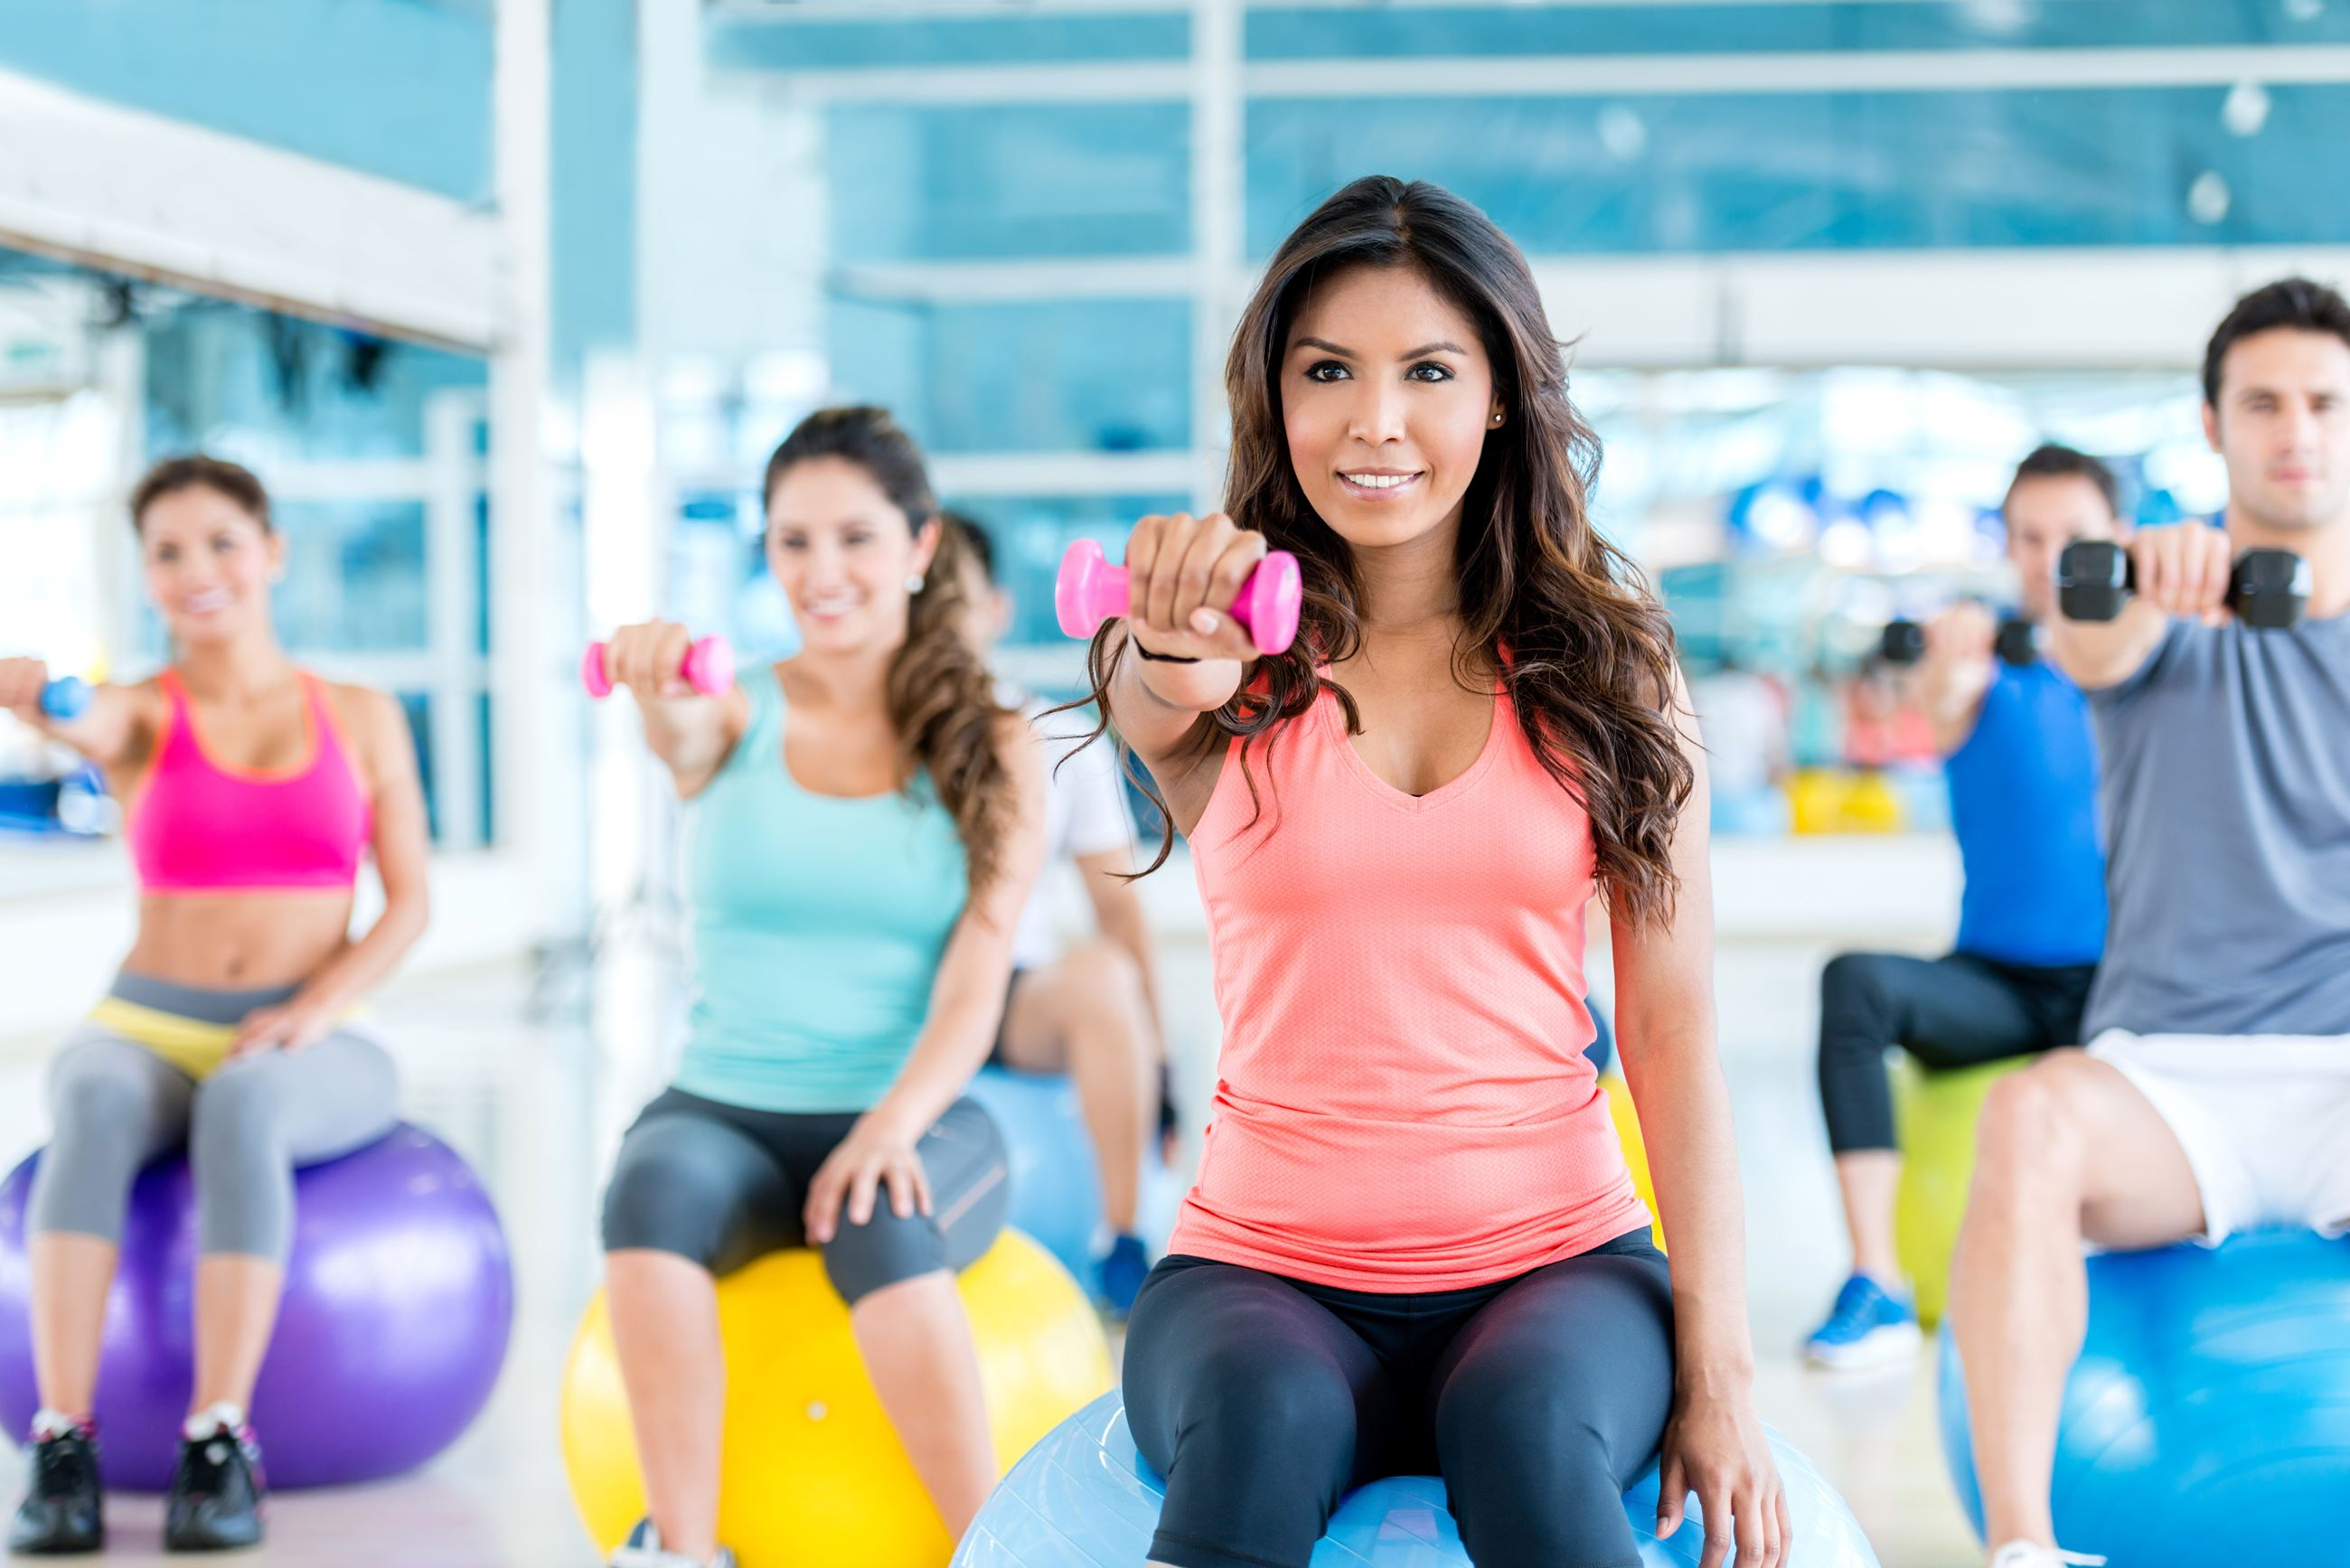 Woman leading fitness class with weight on exercise ball